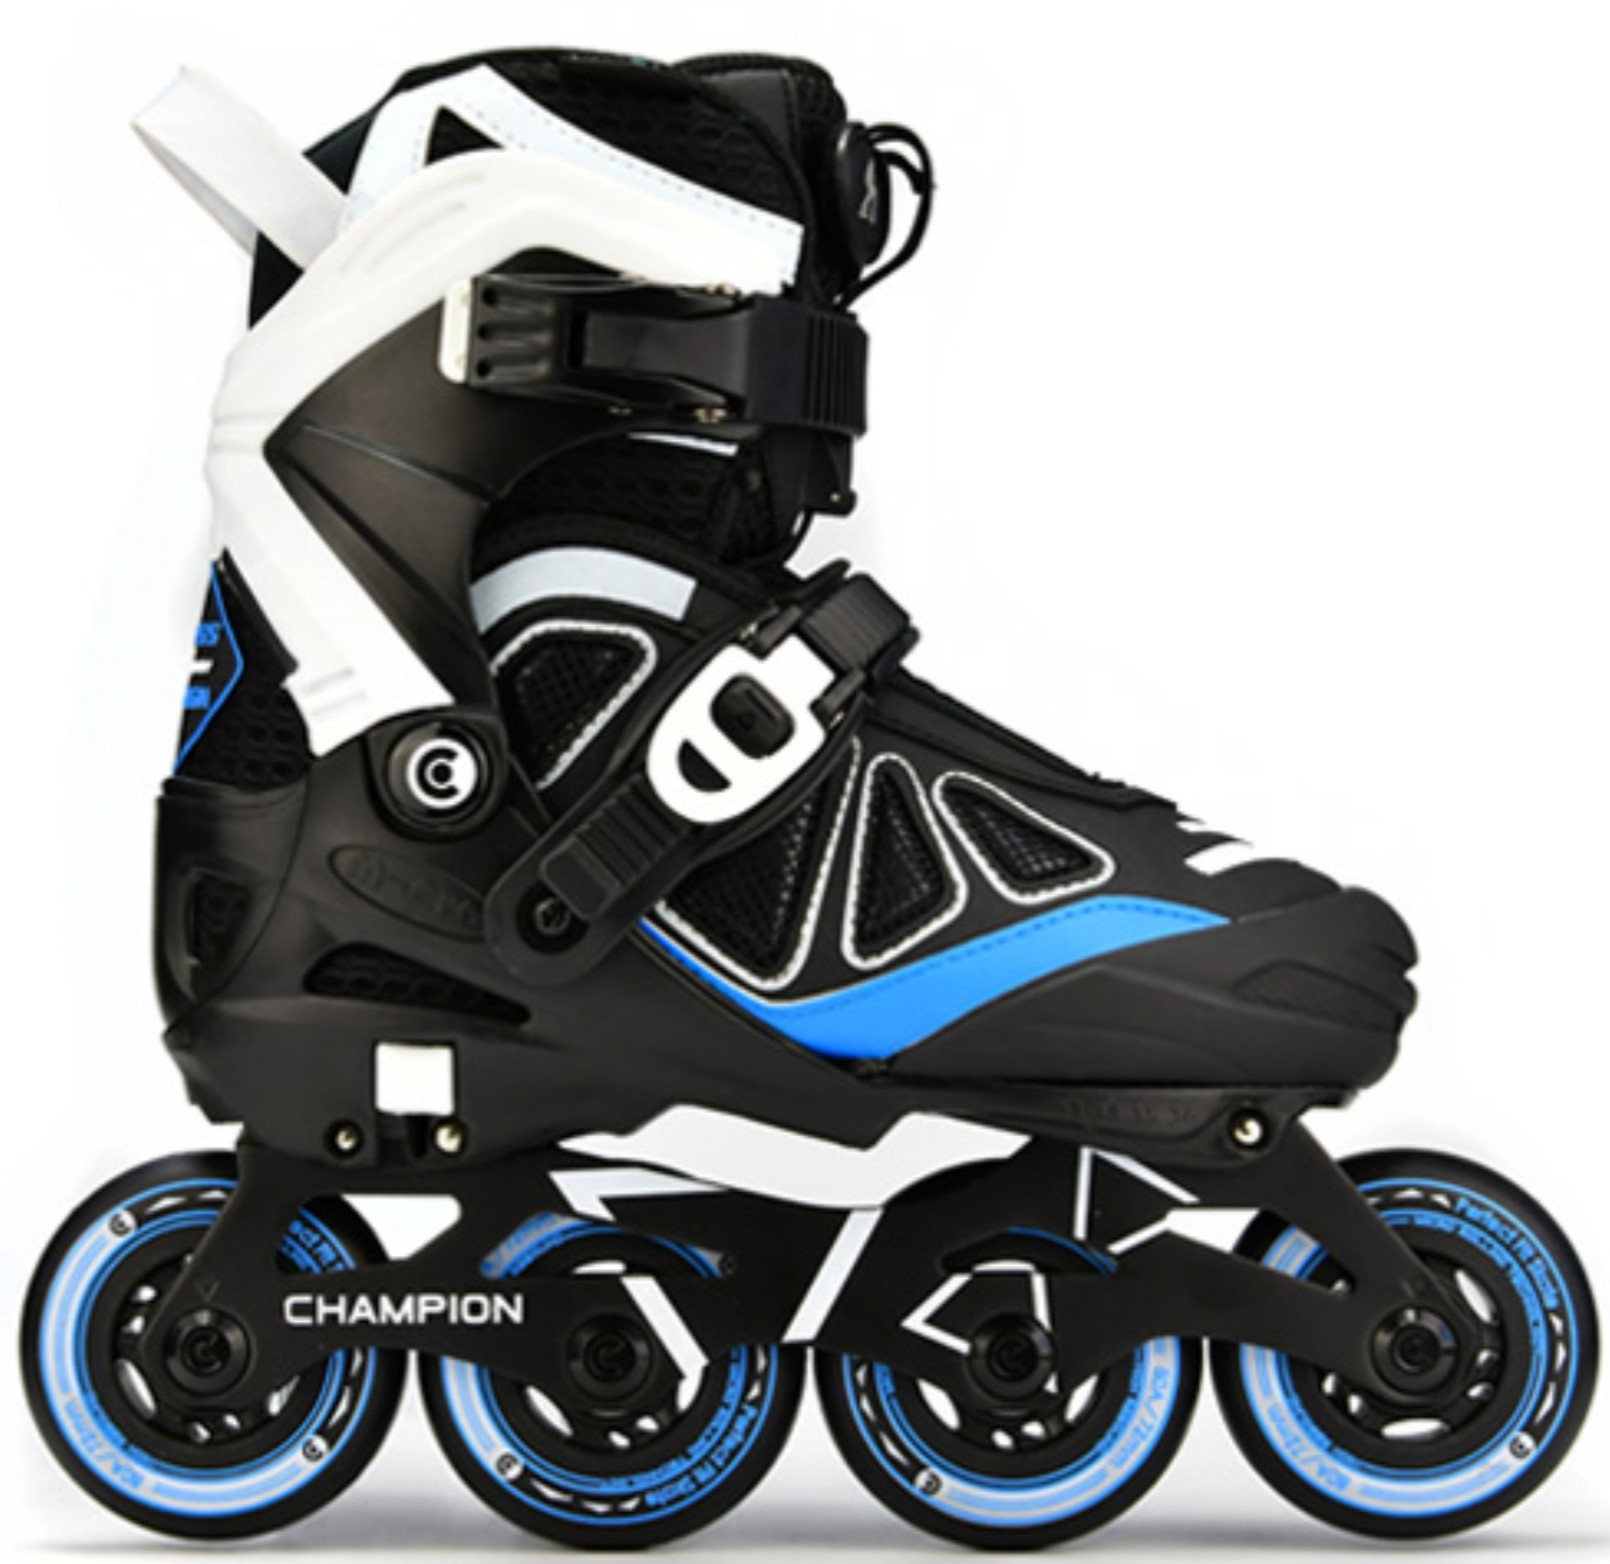 Micro Champion inline skate for kids adjustable in size in colours black blue and white with 76 mm wheels in side view